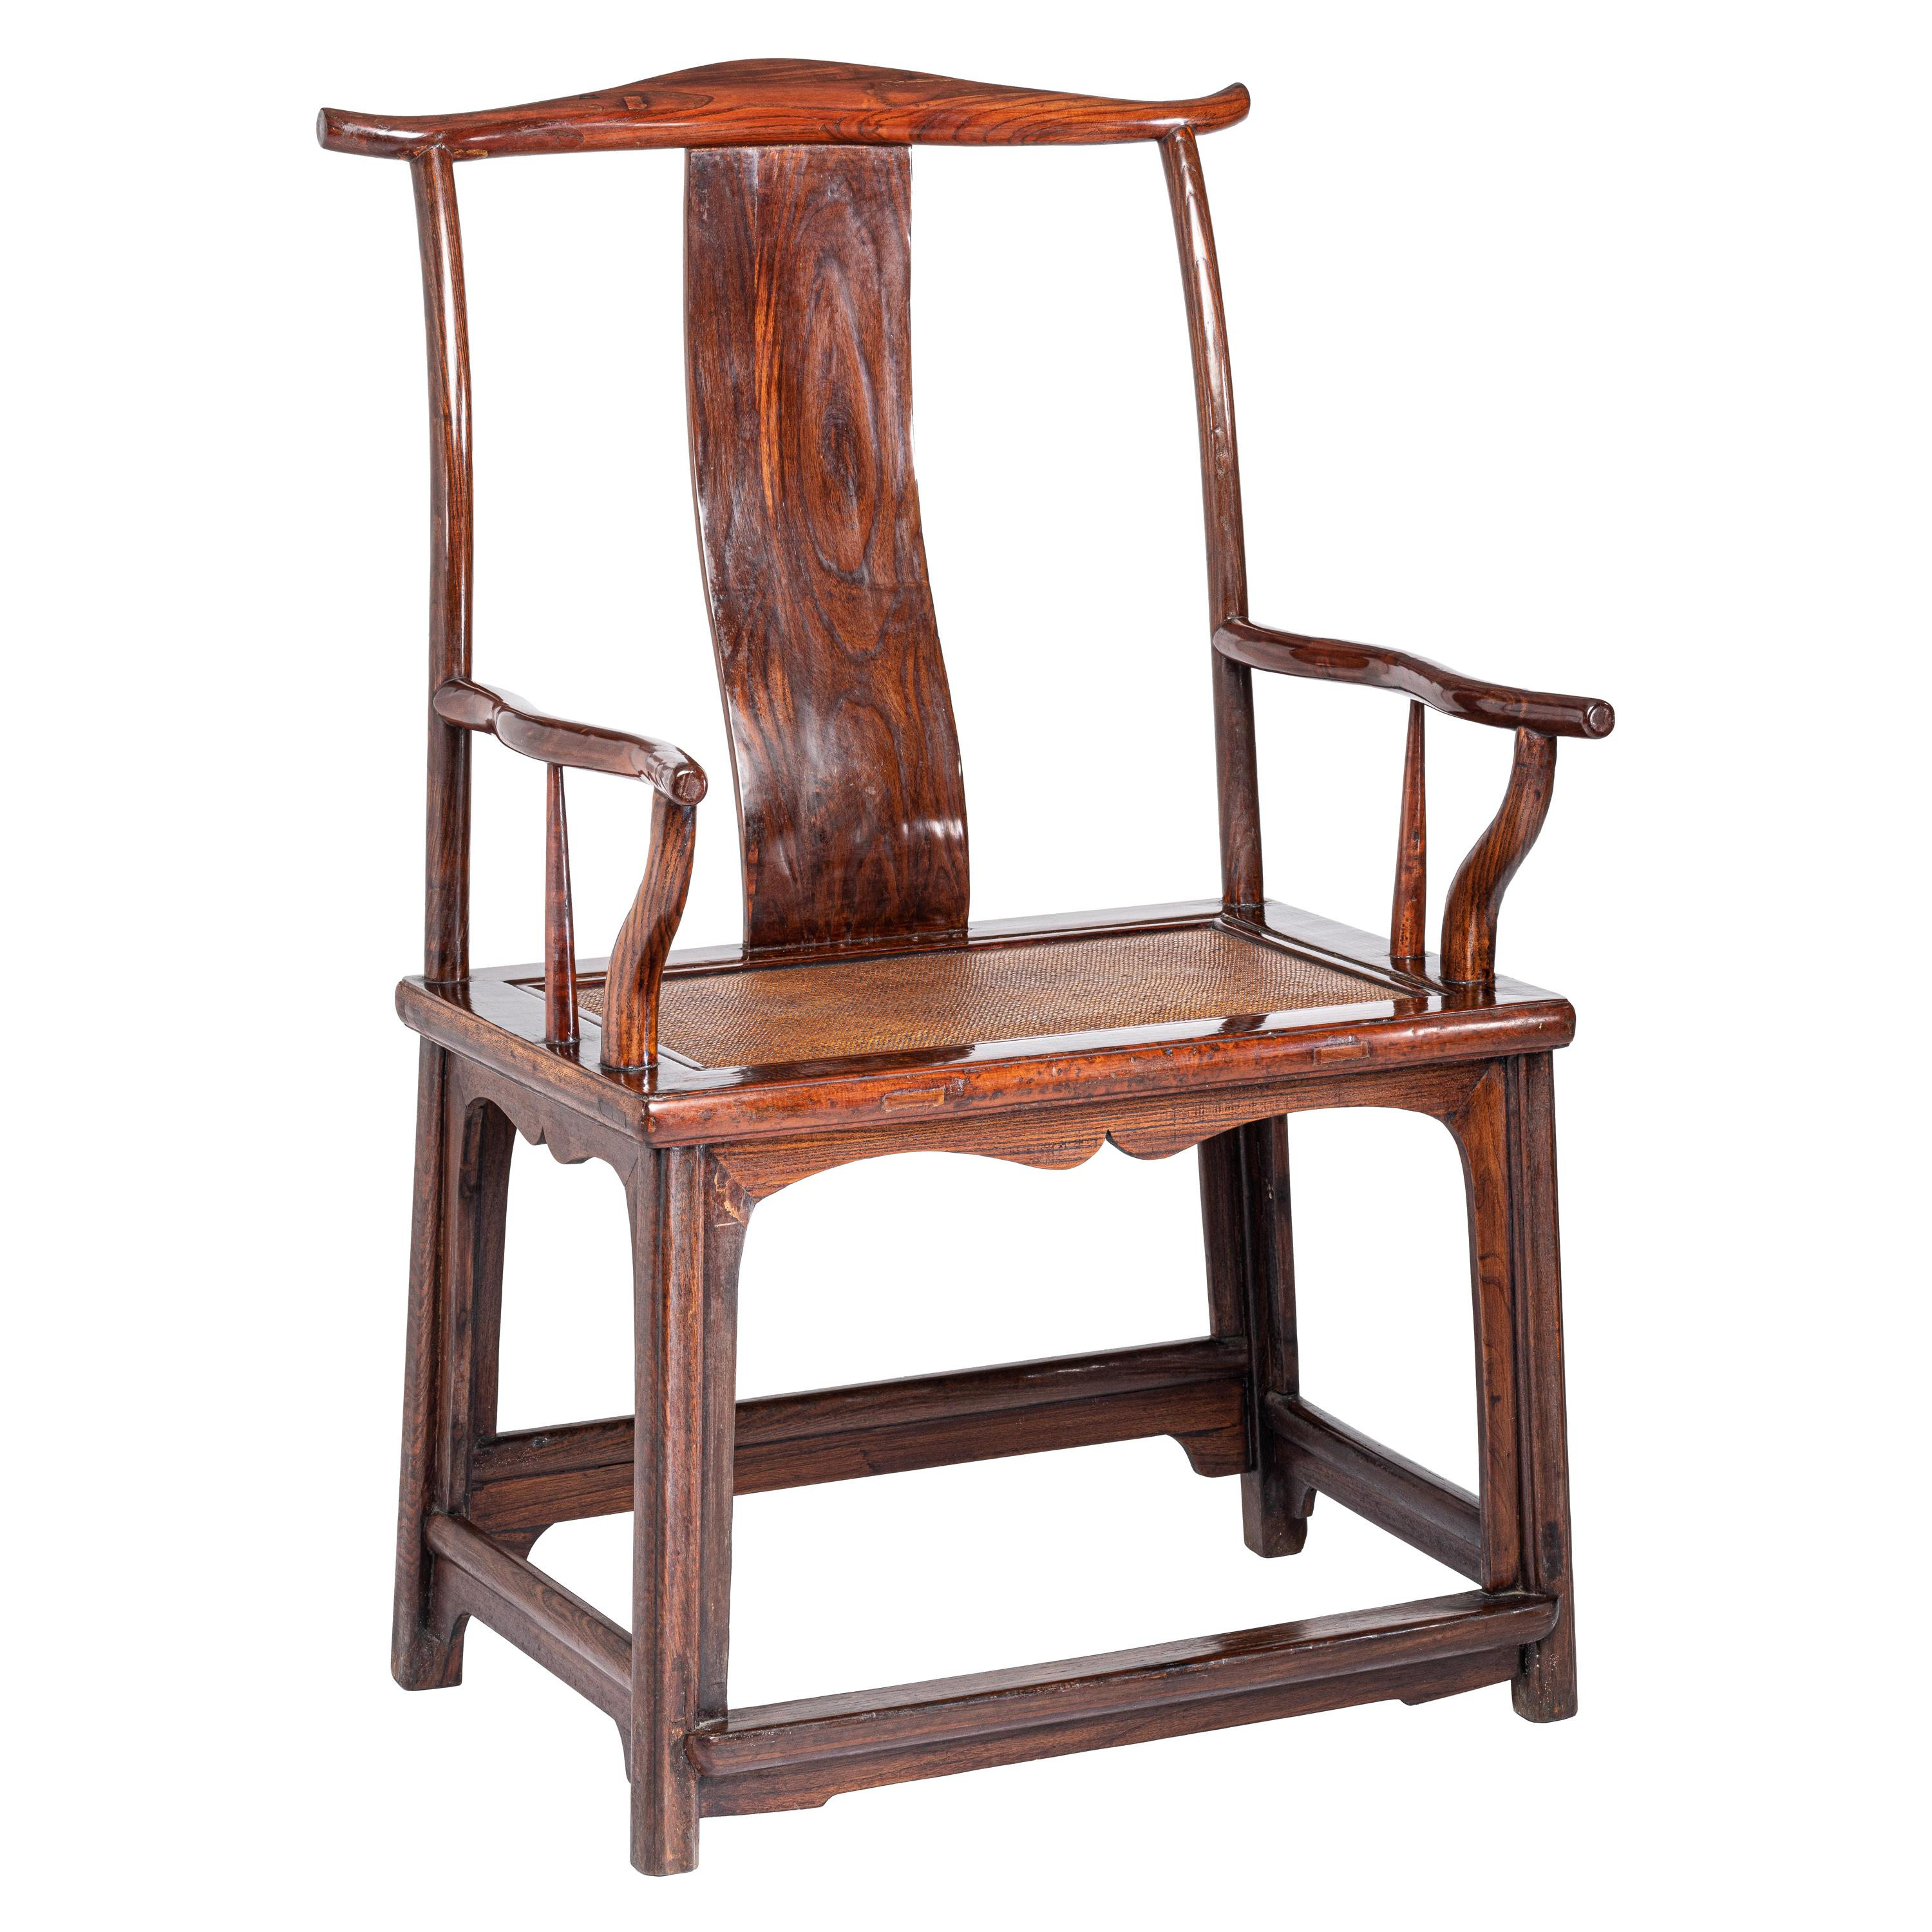 Antique Chinese Official's Hat Armchair with Protruding Yoke Back and Hand Grips